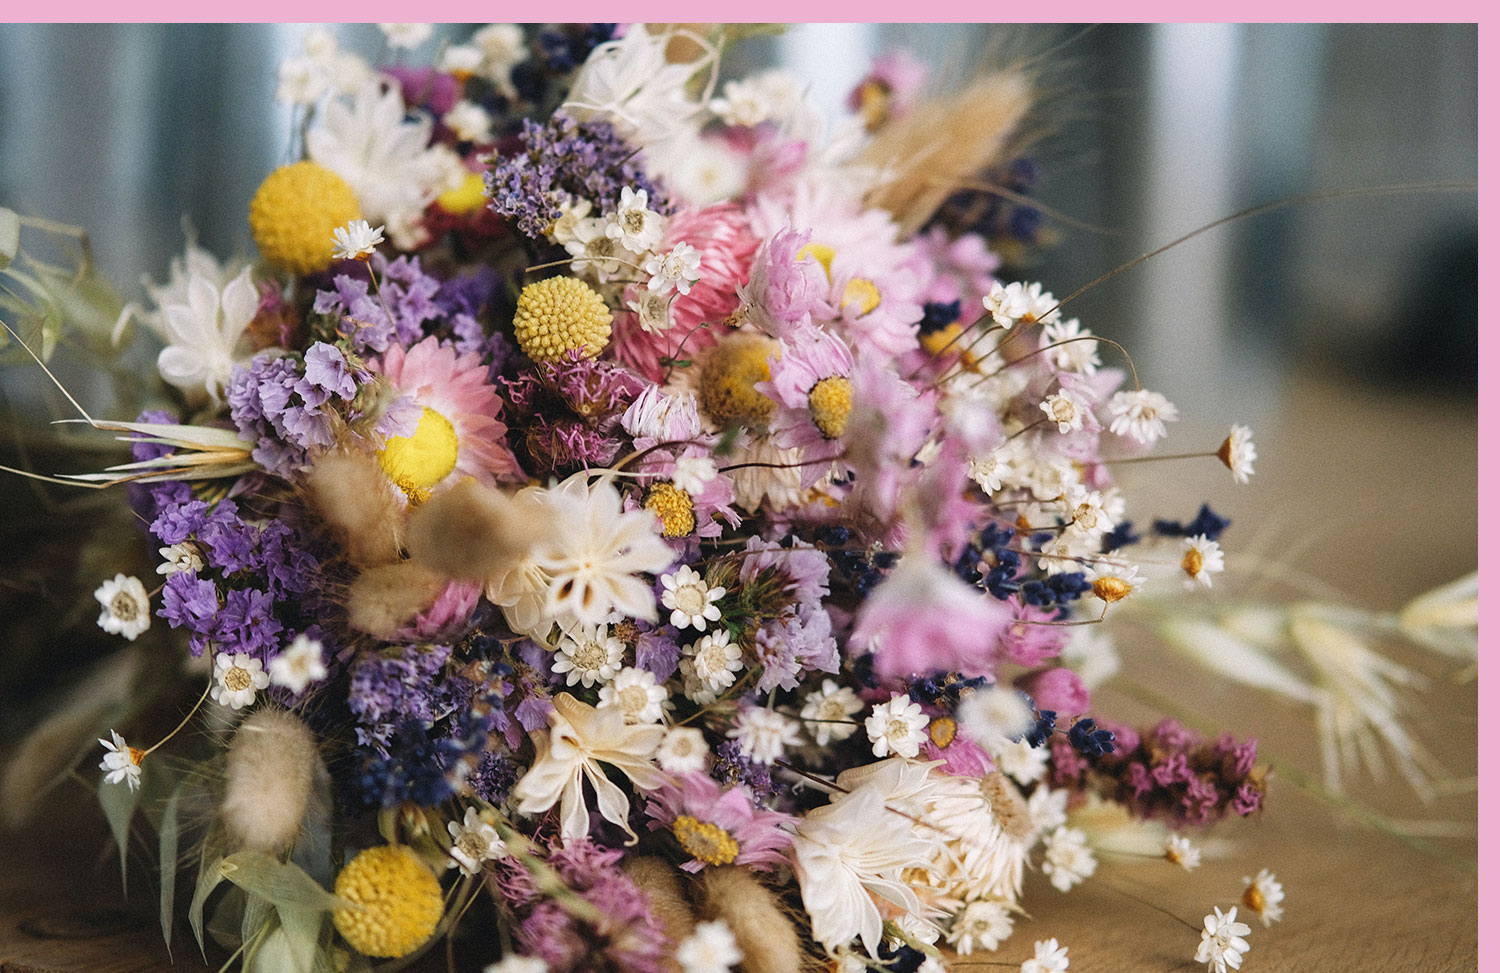 bouquet of purple, pink and white flowers